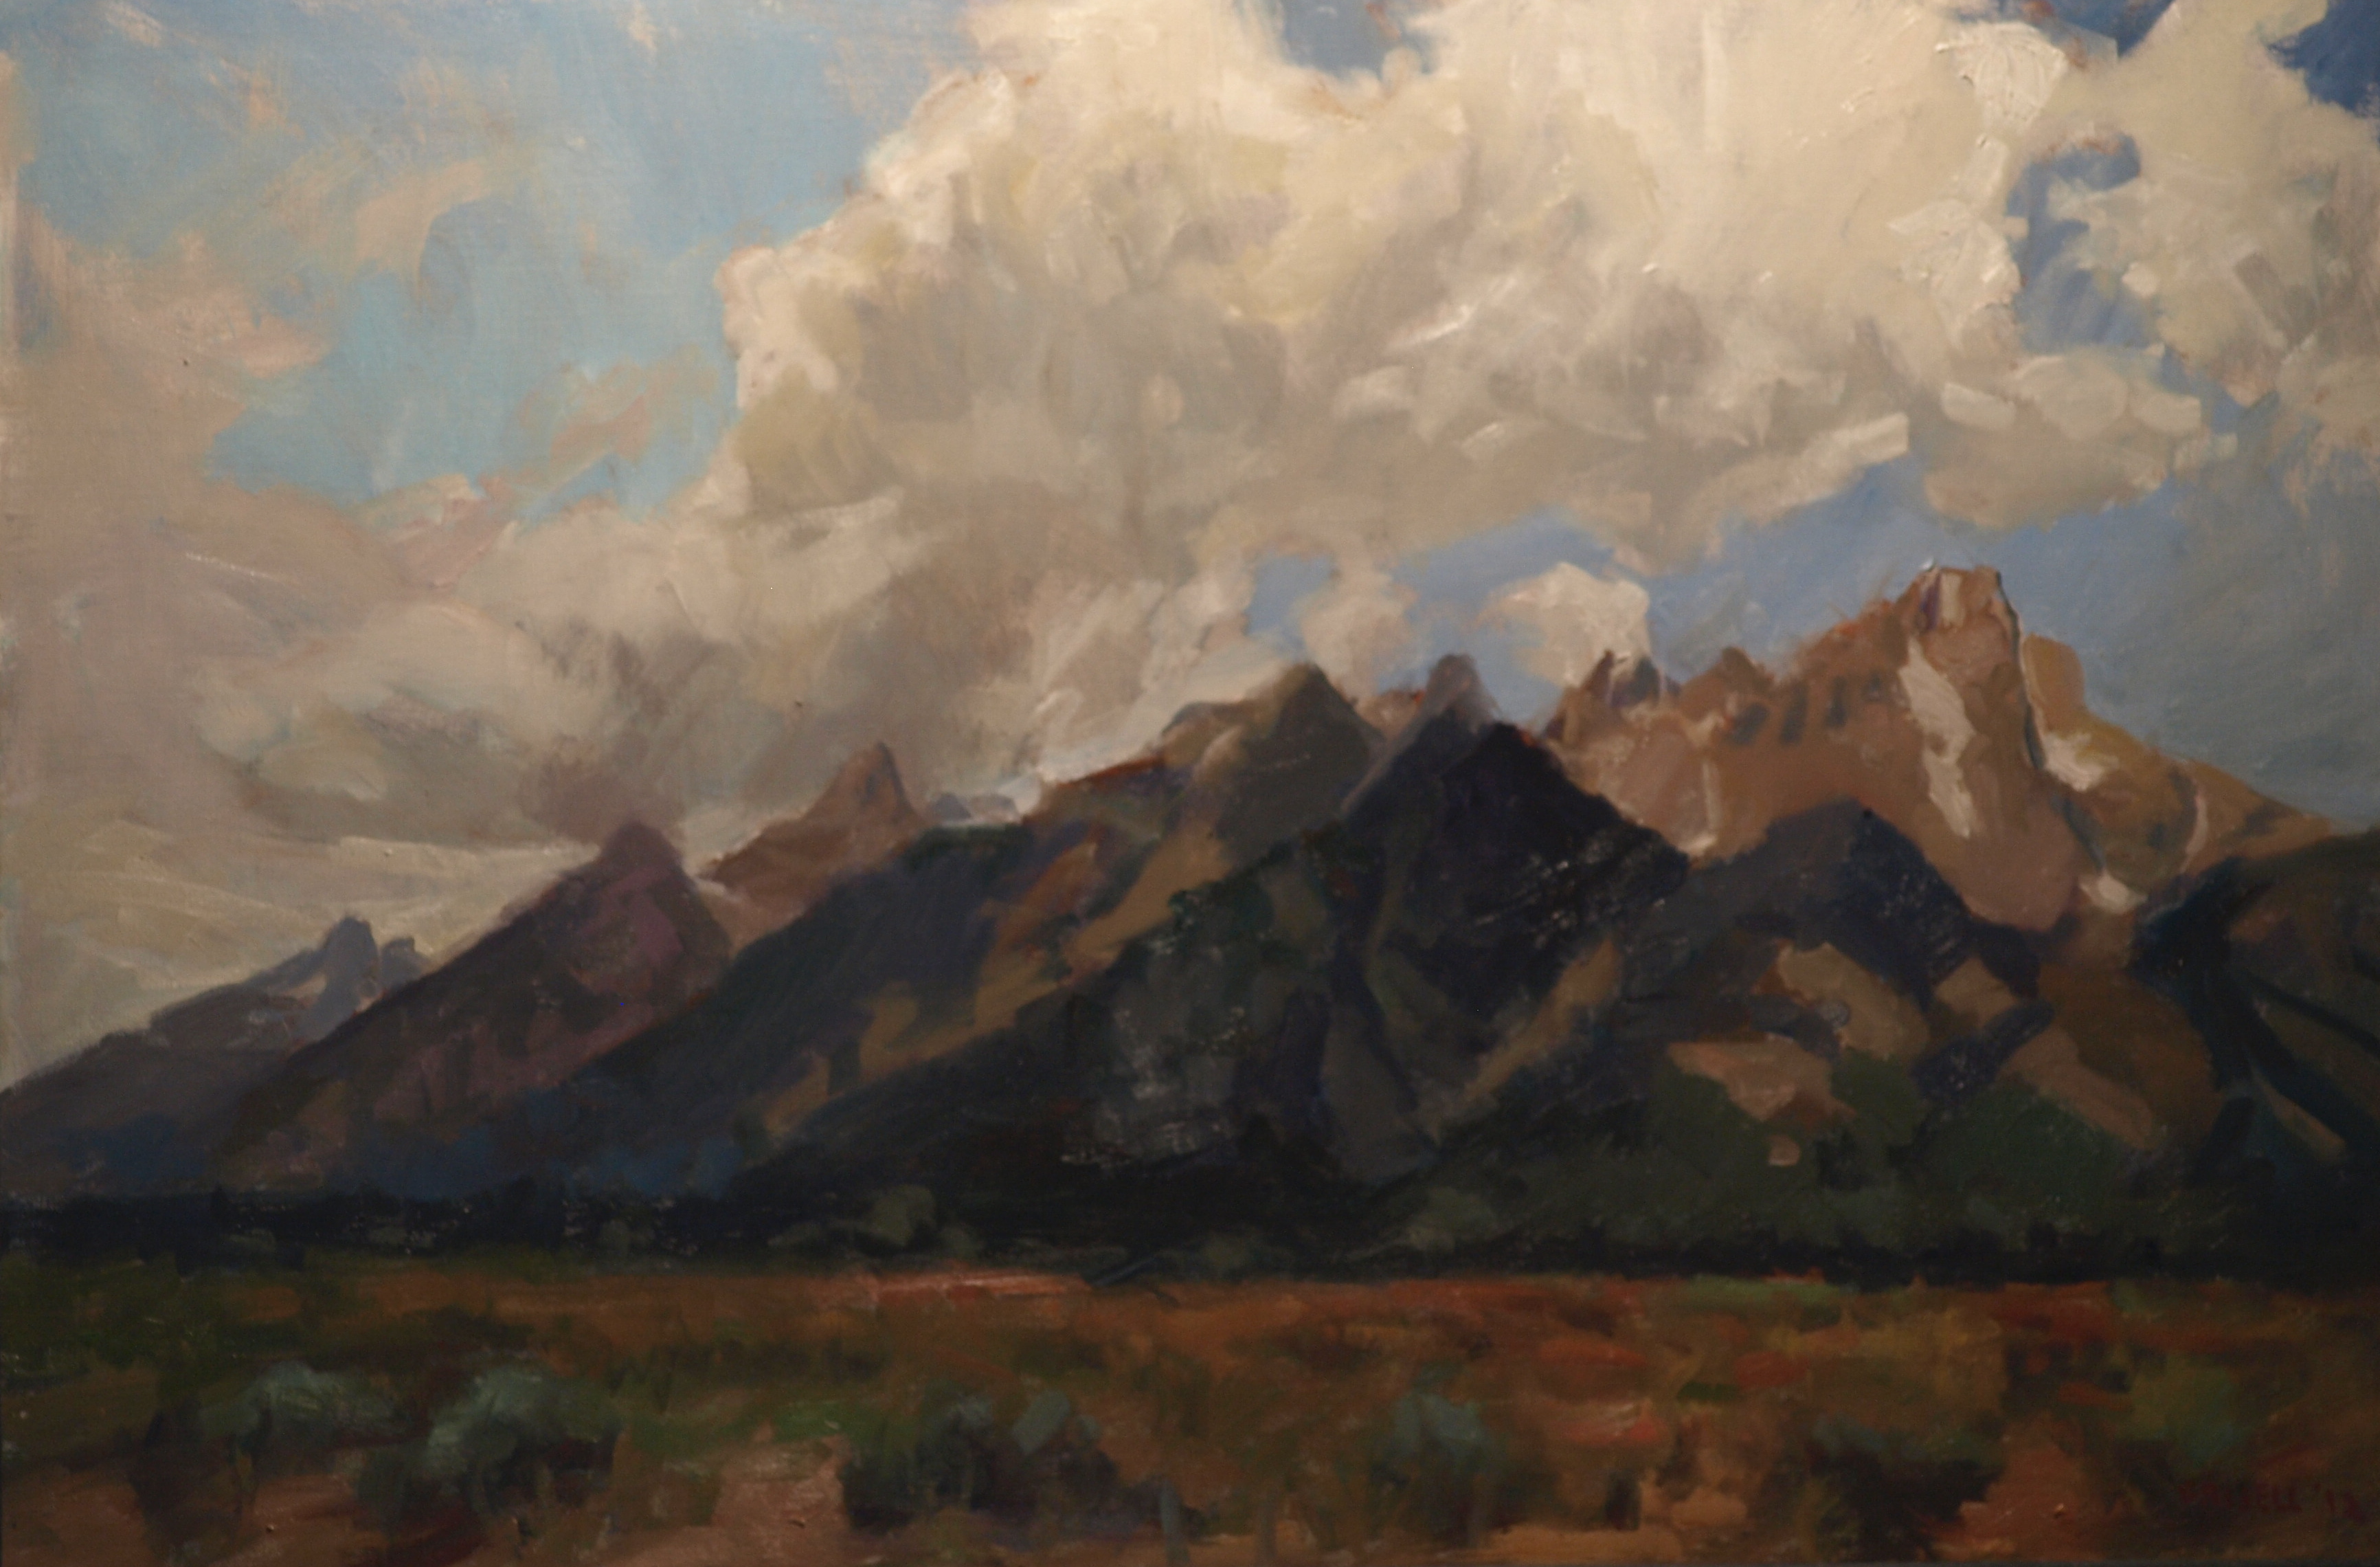 Grand Tetons, Oil on Canvas, 24 x 36 Inches, by Susan Grisell, $1200